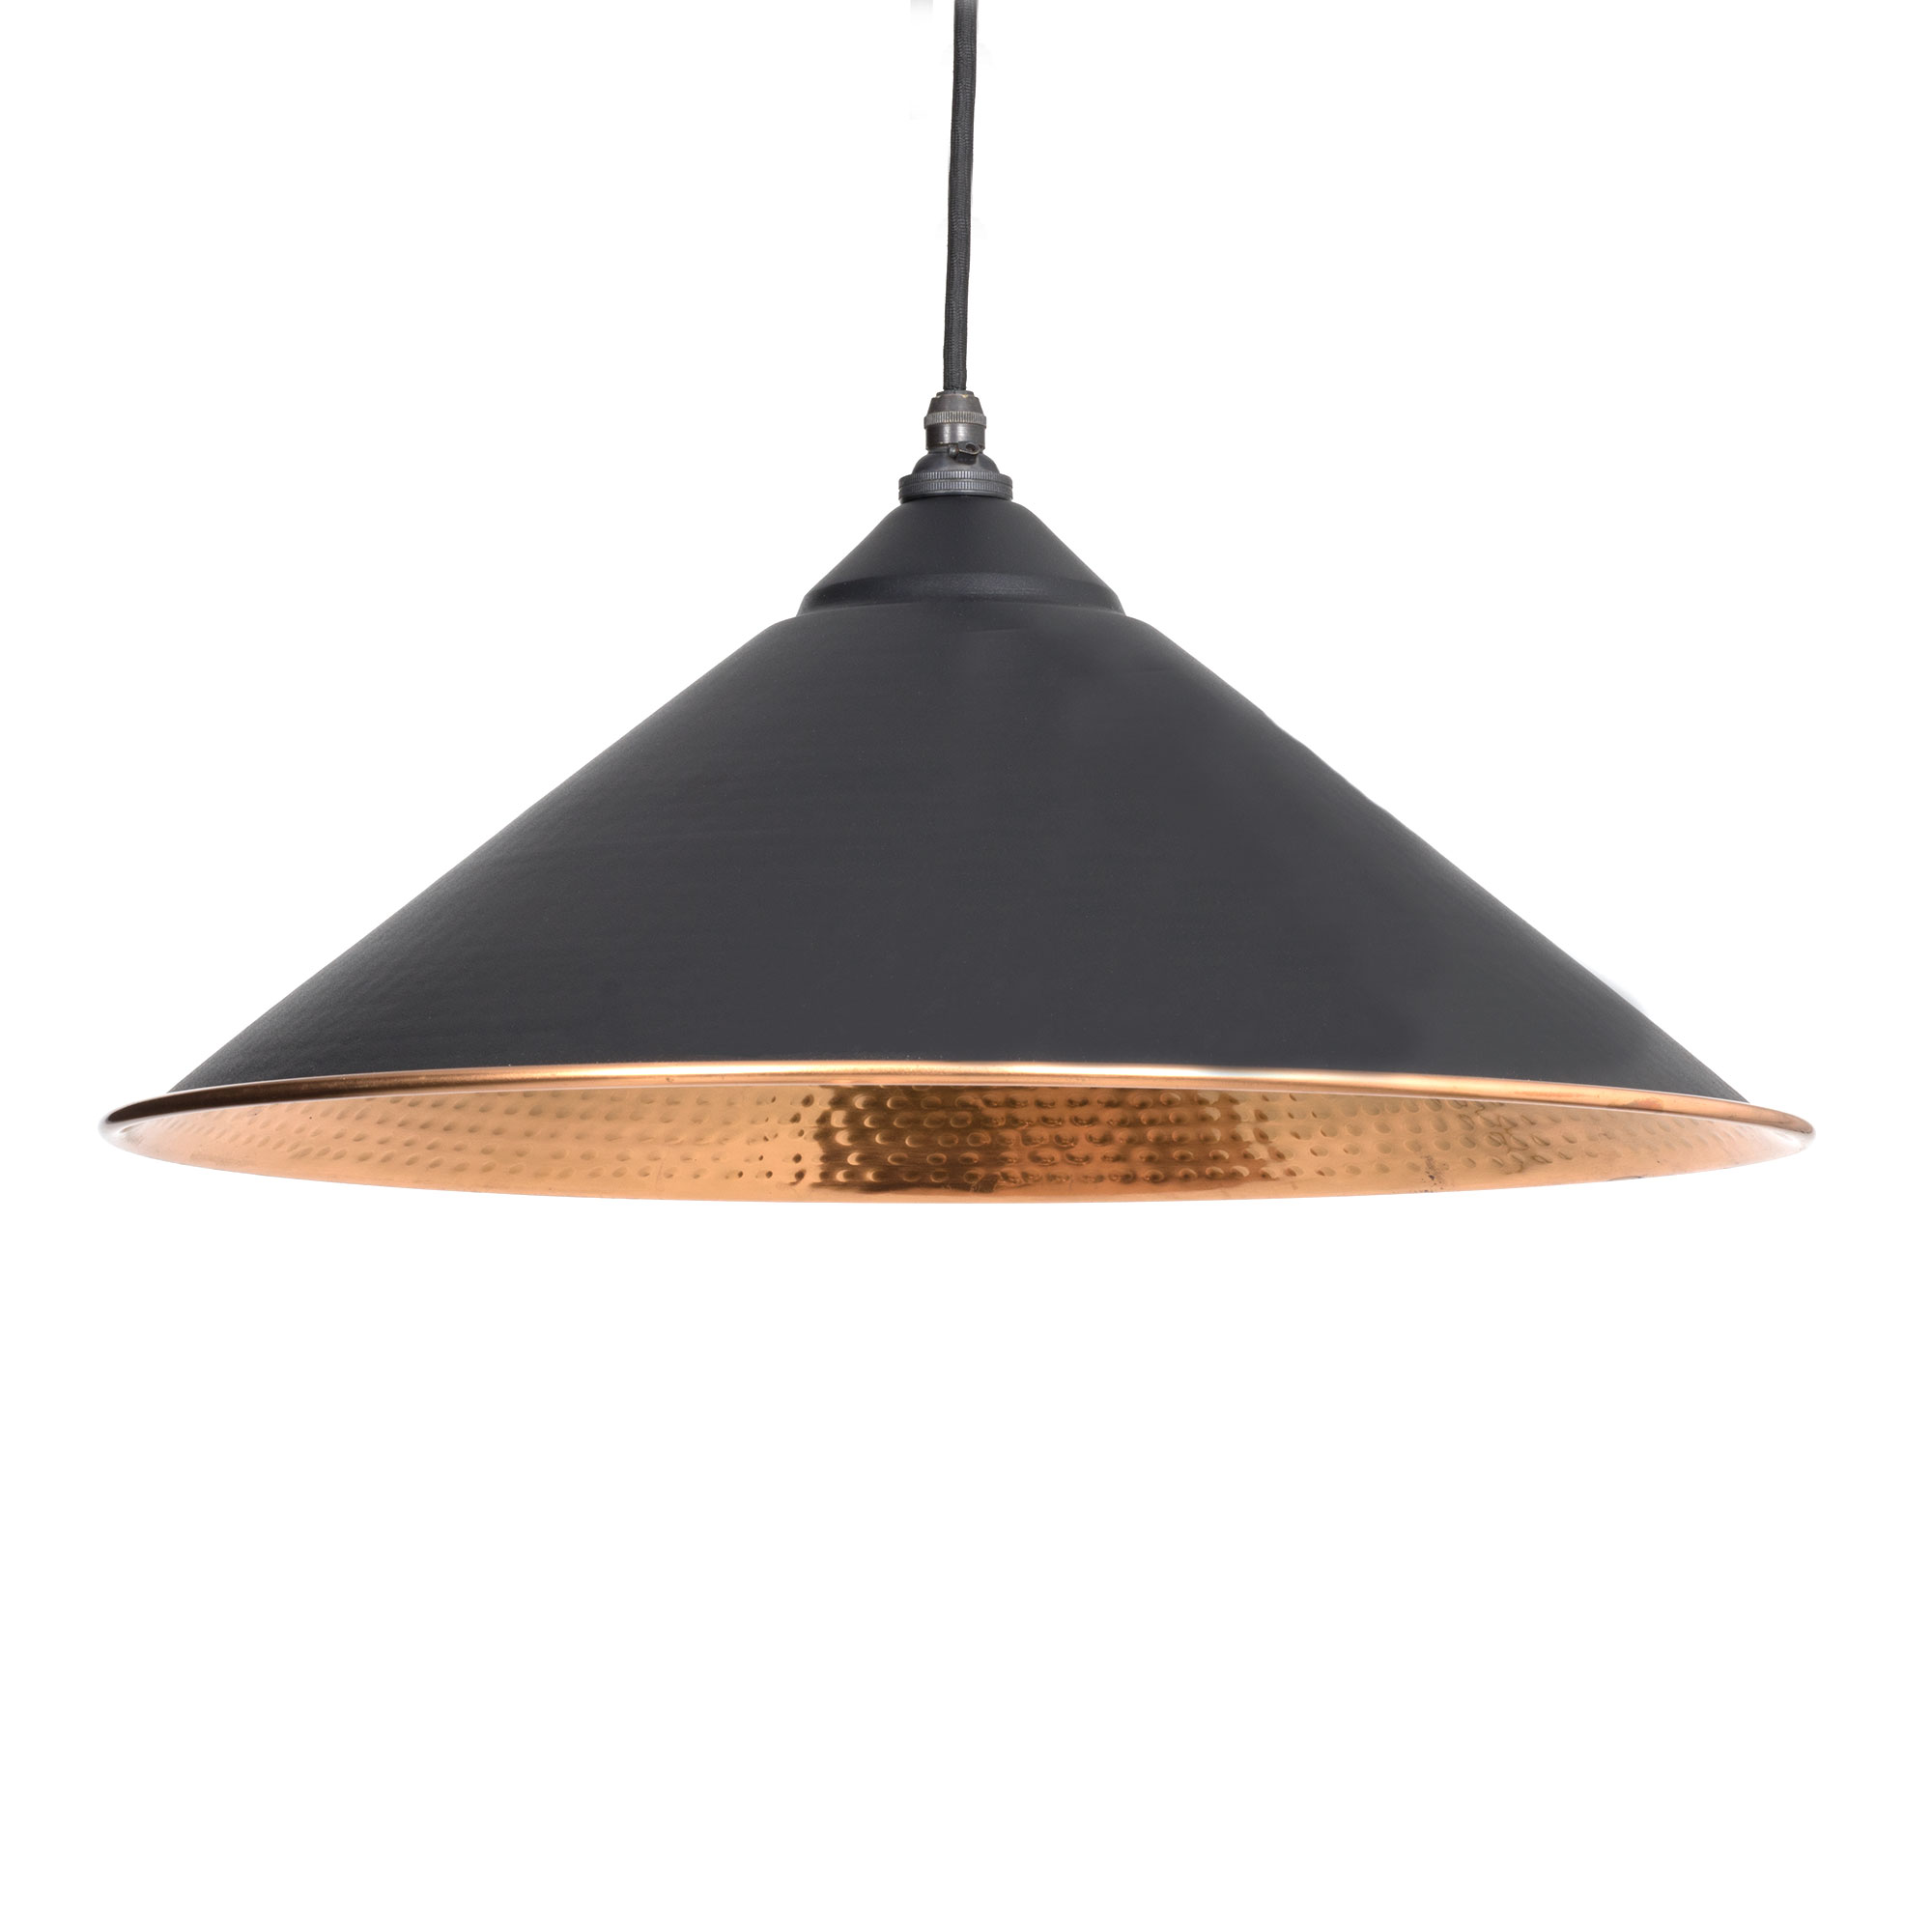 Yardley Pendant Hammered Copper Black & Copper